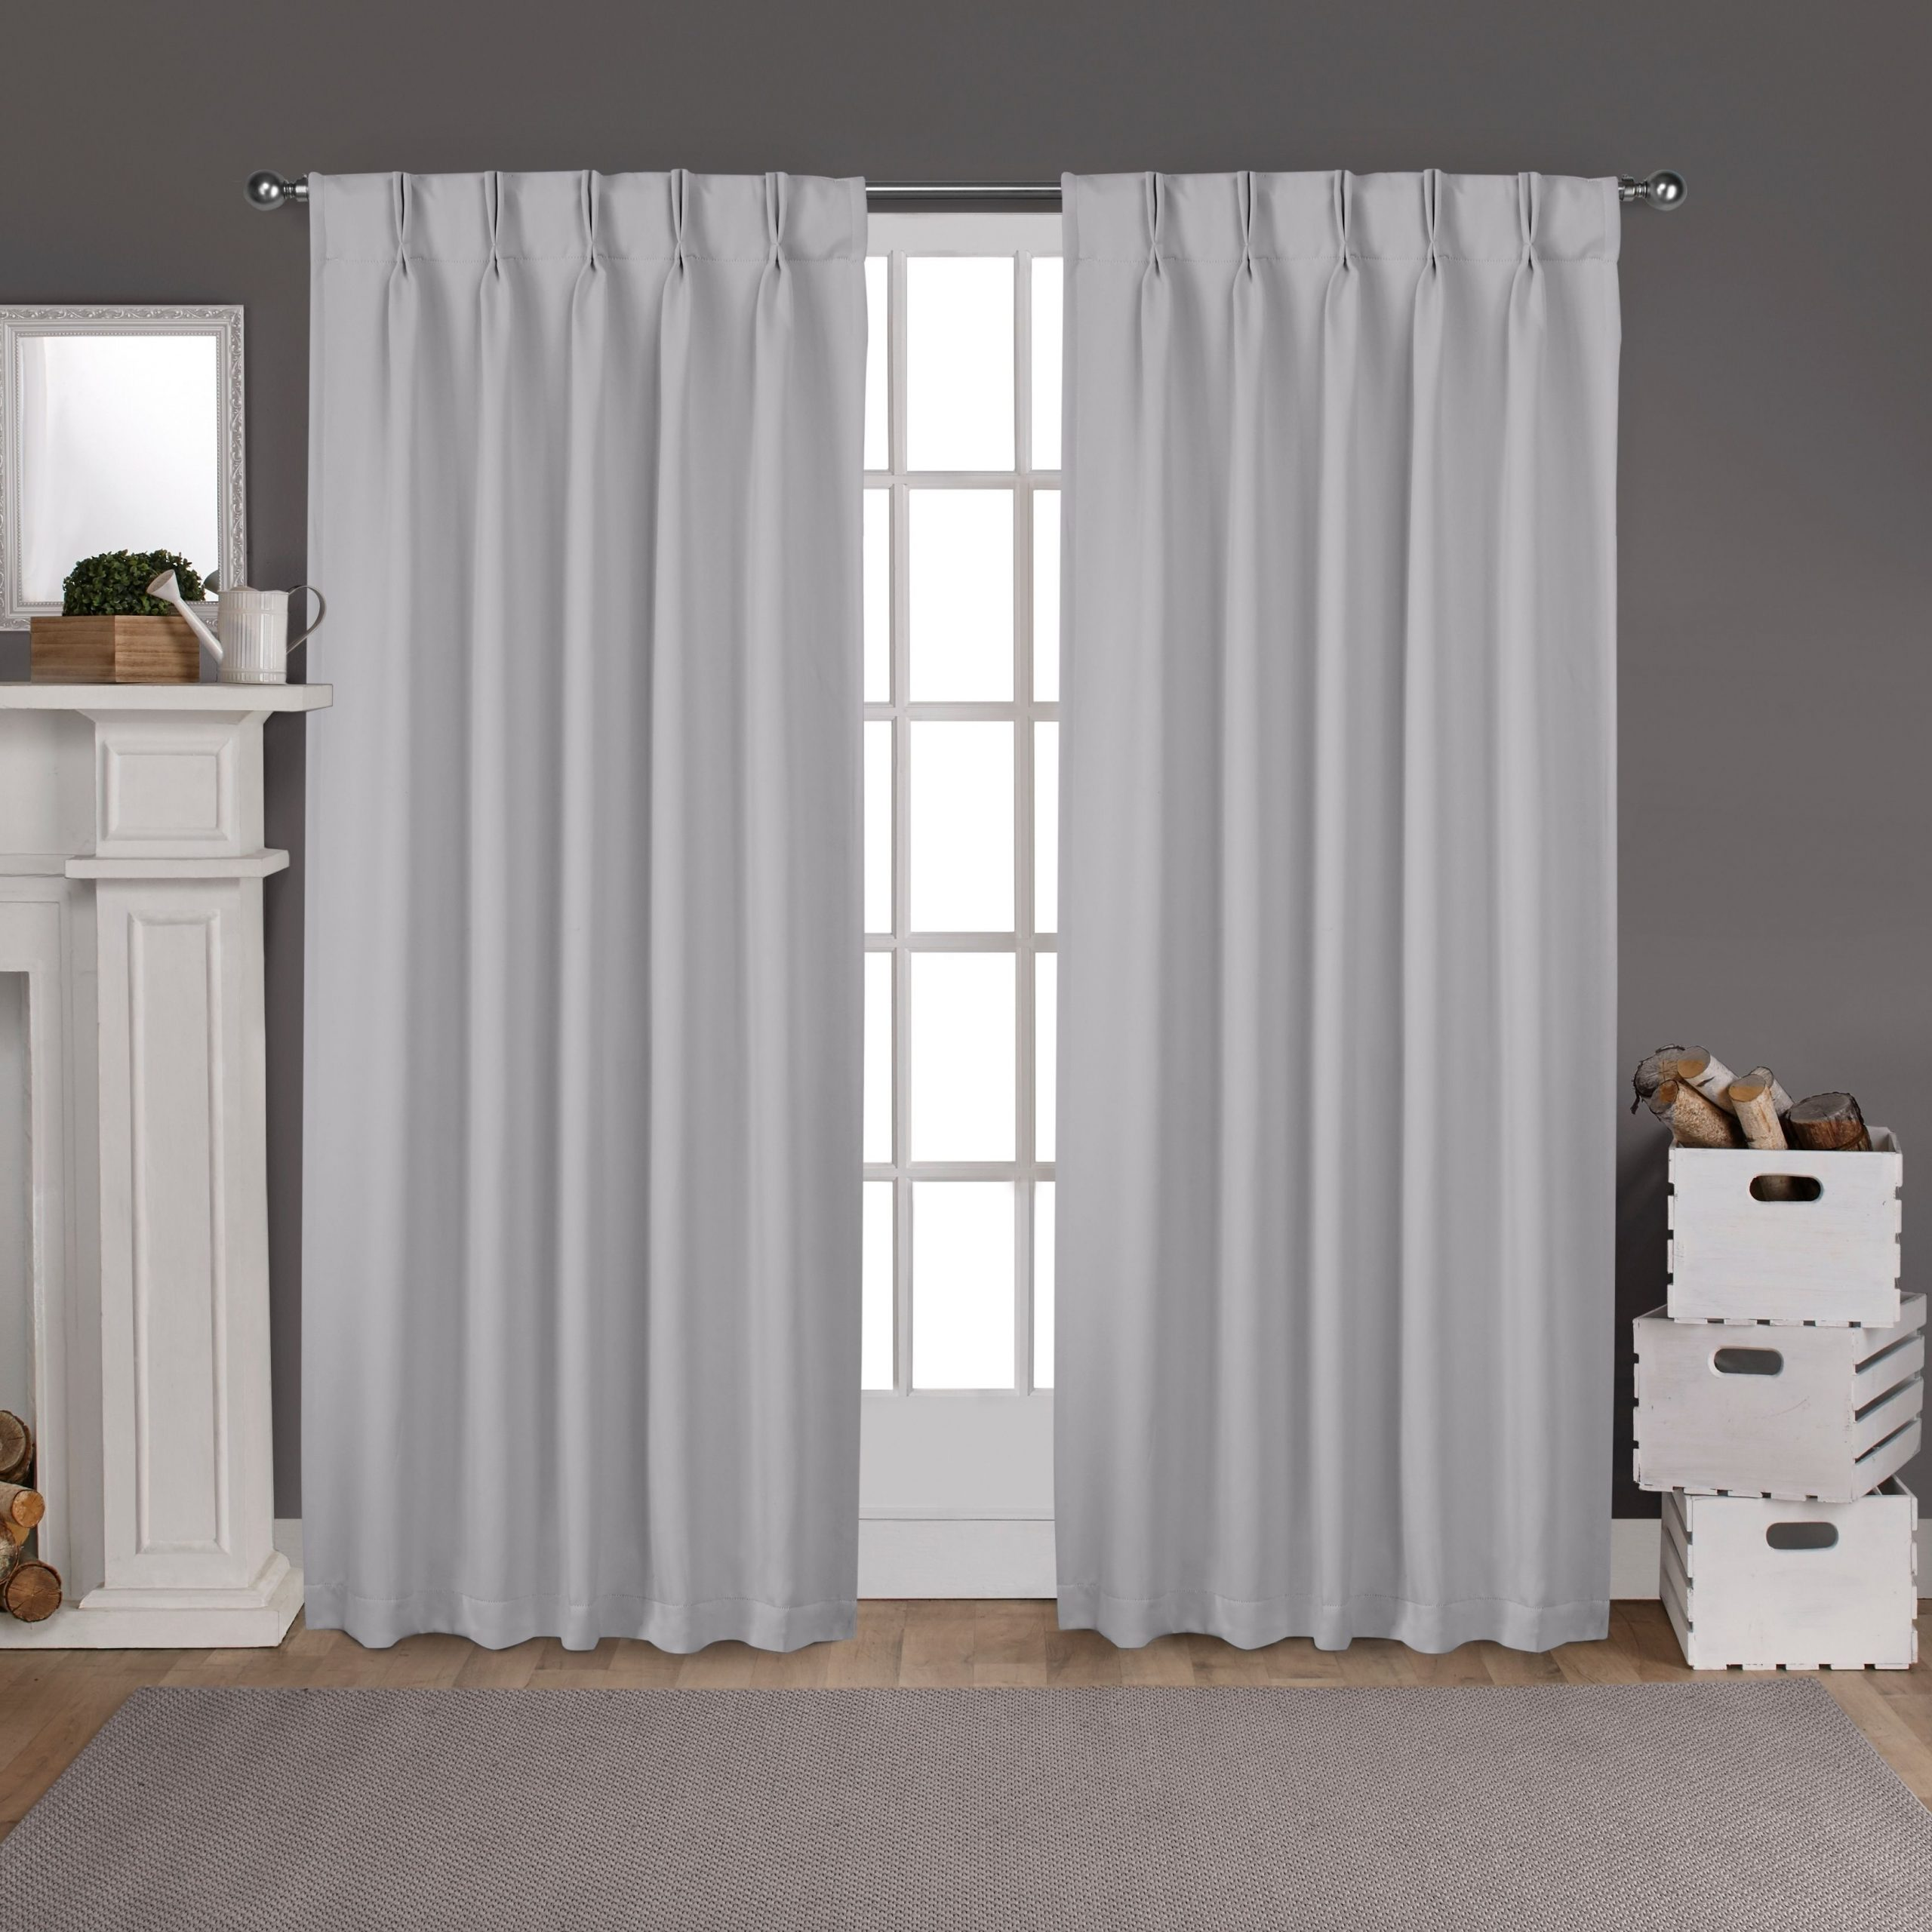 Sateen Woven Blackout Curtain Panel Pairs With Pinch Pleat Top Intended For Popular Ati Home Sateen Woven Blackout Curtain Panel Pair With Pinch (View 15 of 20)